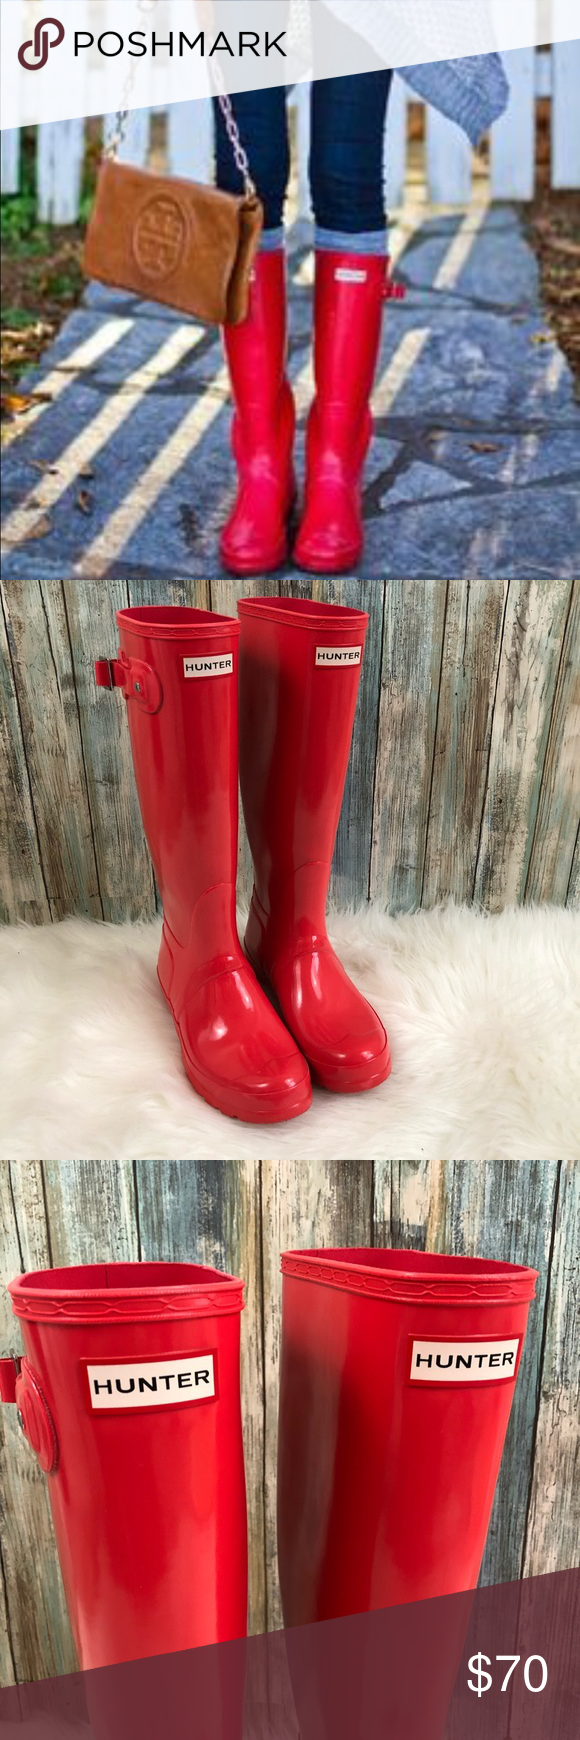 Hunter Bright Coral Glossy Boots 7 EUC | Boots, Hunter ...